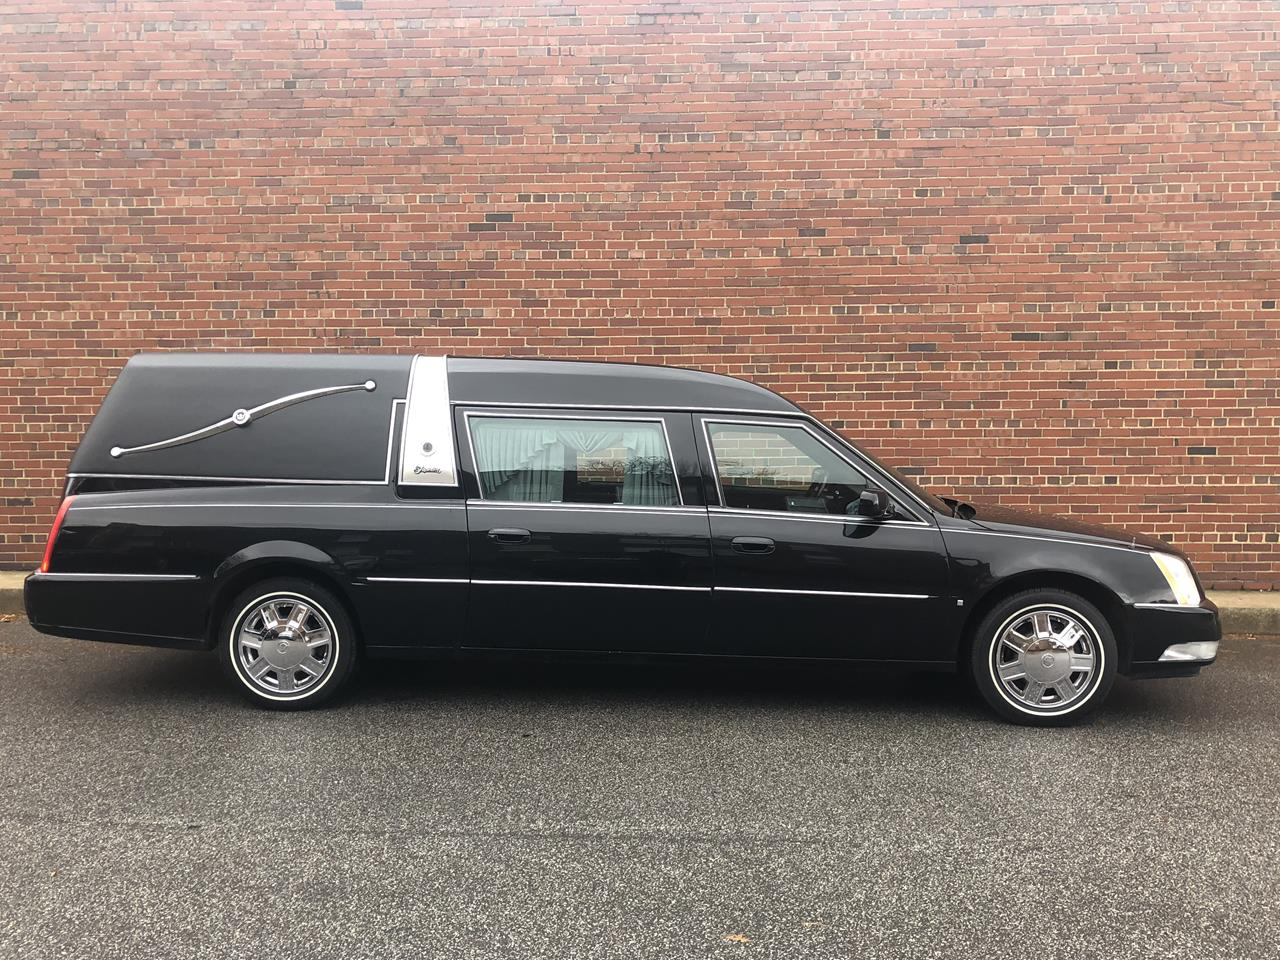 2006 Cadillac Superior Crown Sovereign Hearse